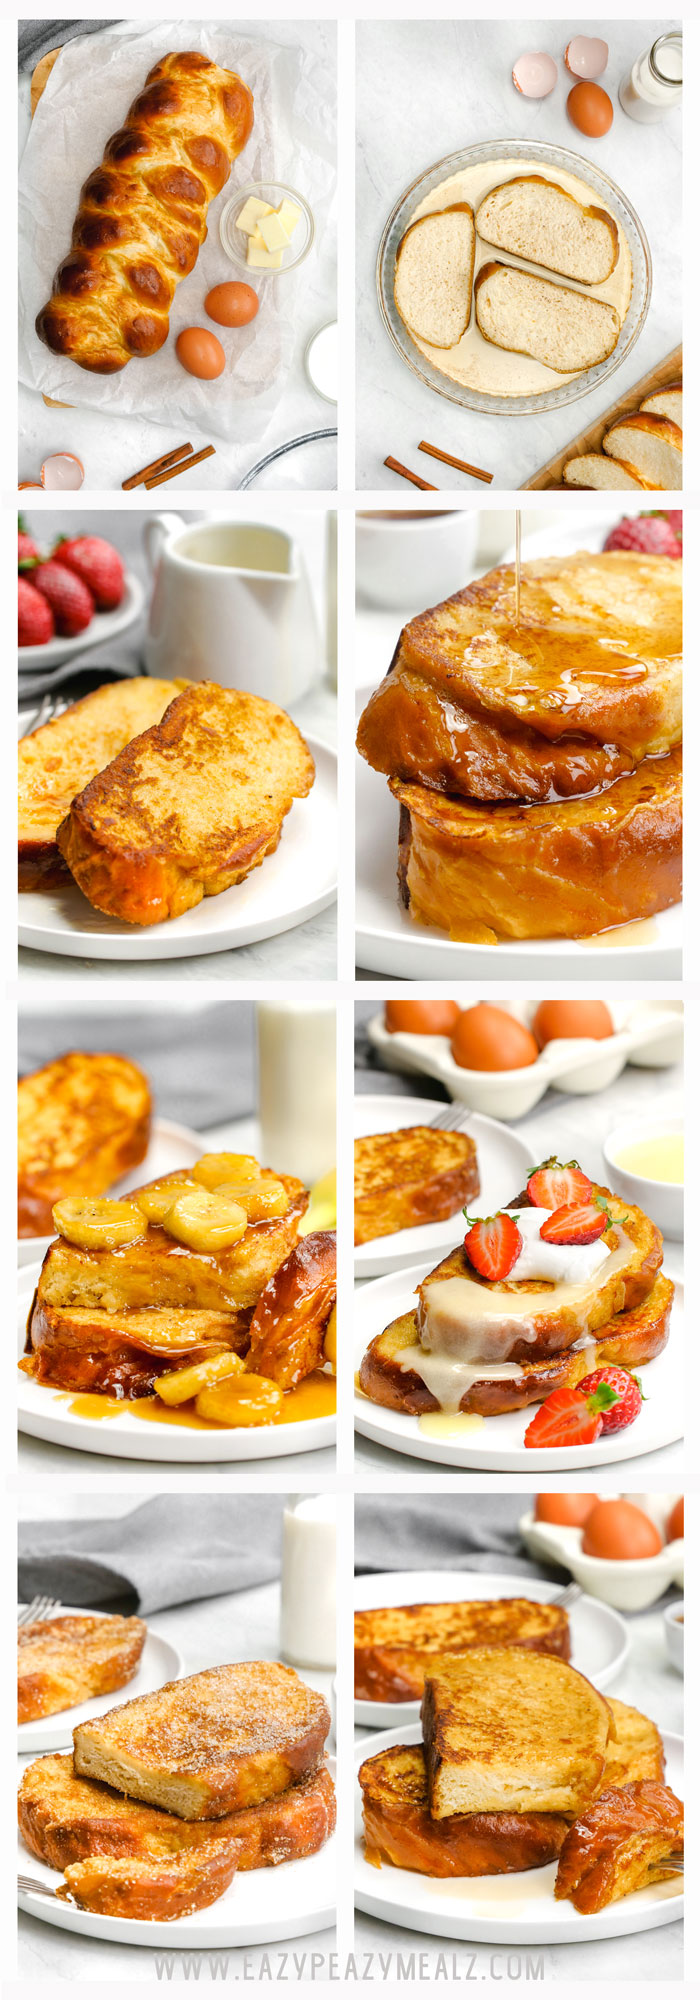 French toast- classic french toast topped 4 ways.